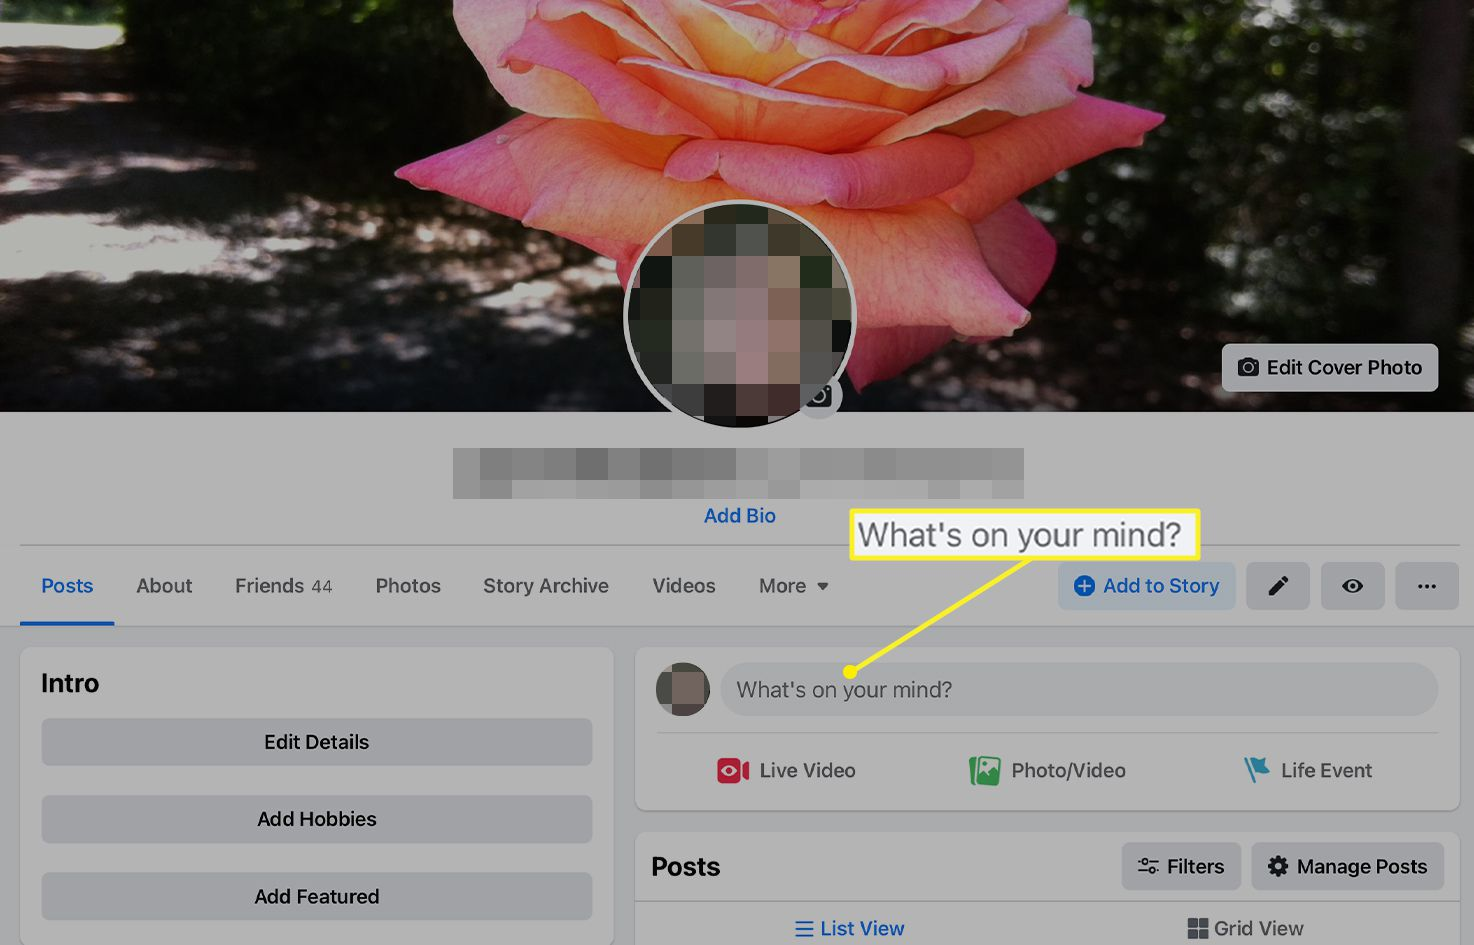 Facebook profile screen with What's on your mind? highlighted